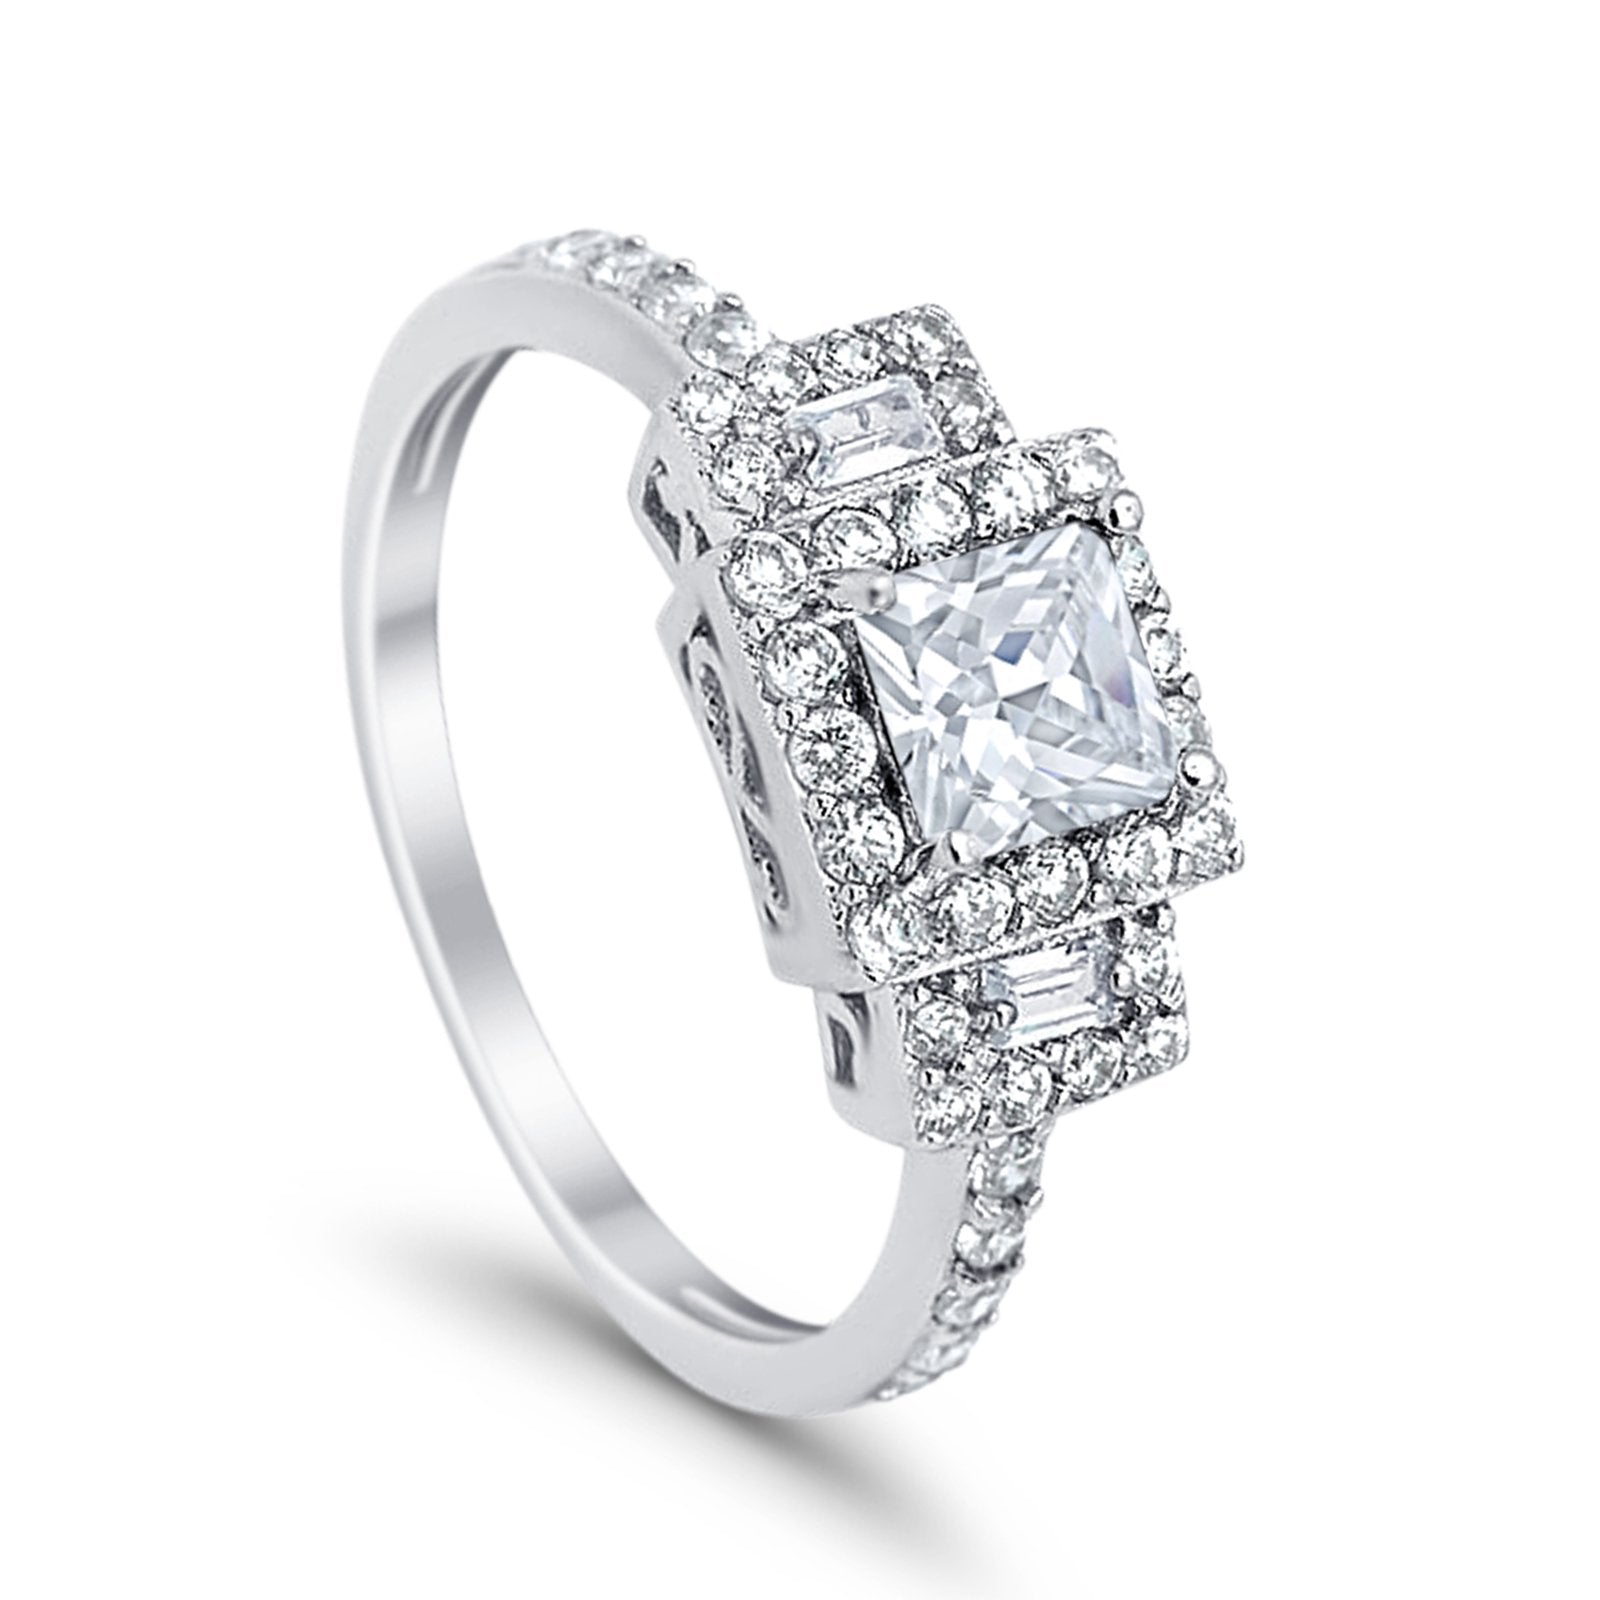 Halo Wedding Ring Baguette Simulated Cubic Zirconia 925 Sterling Silver